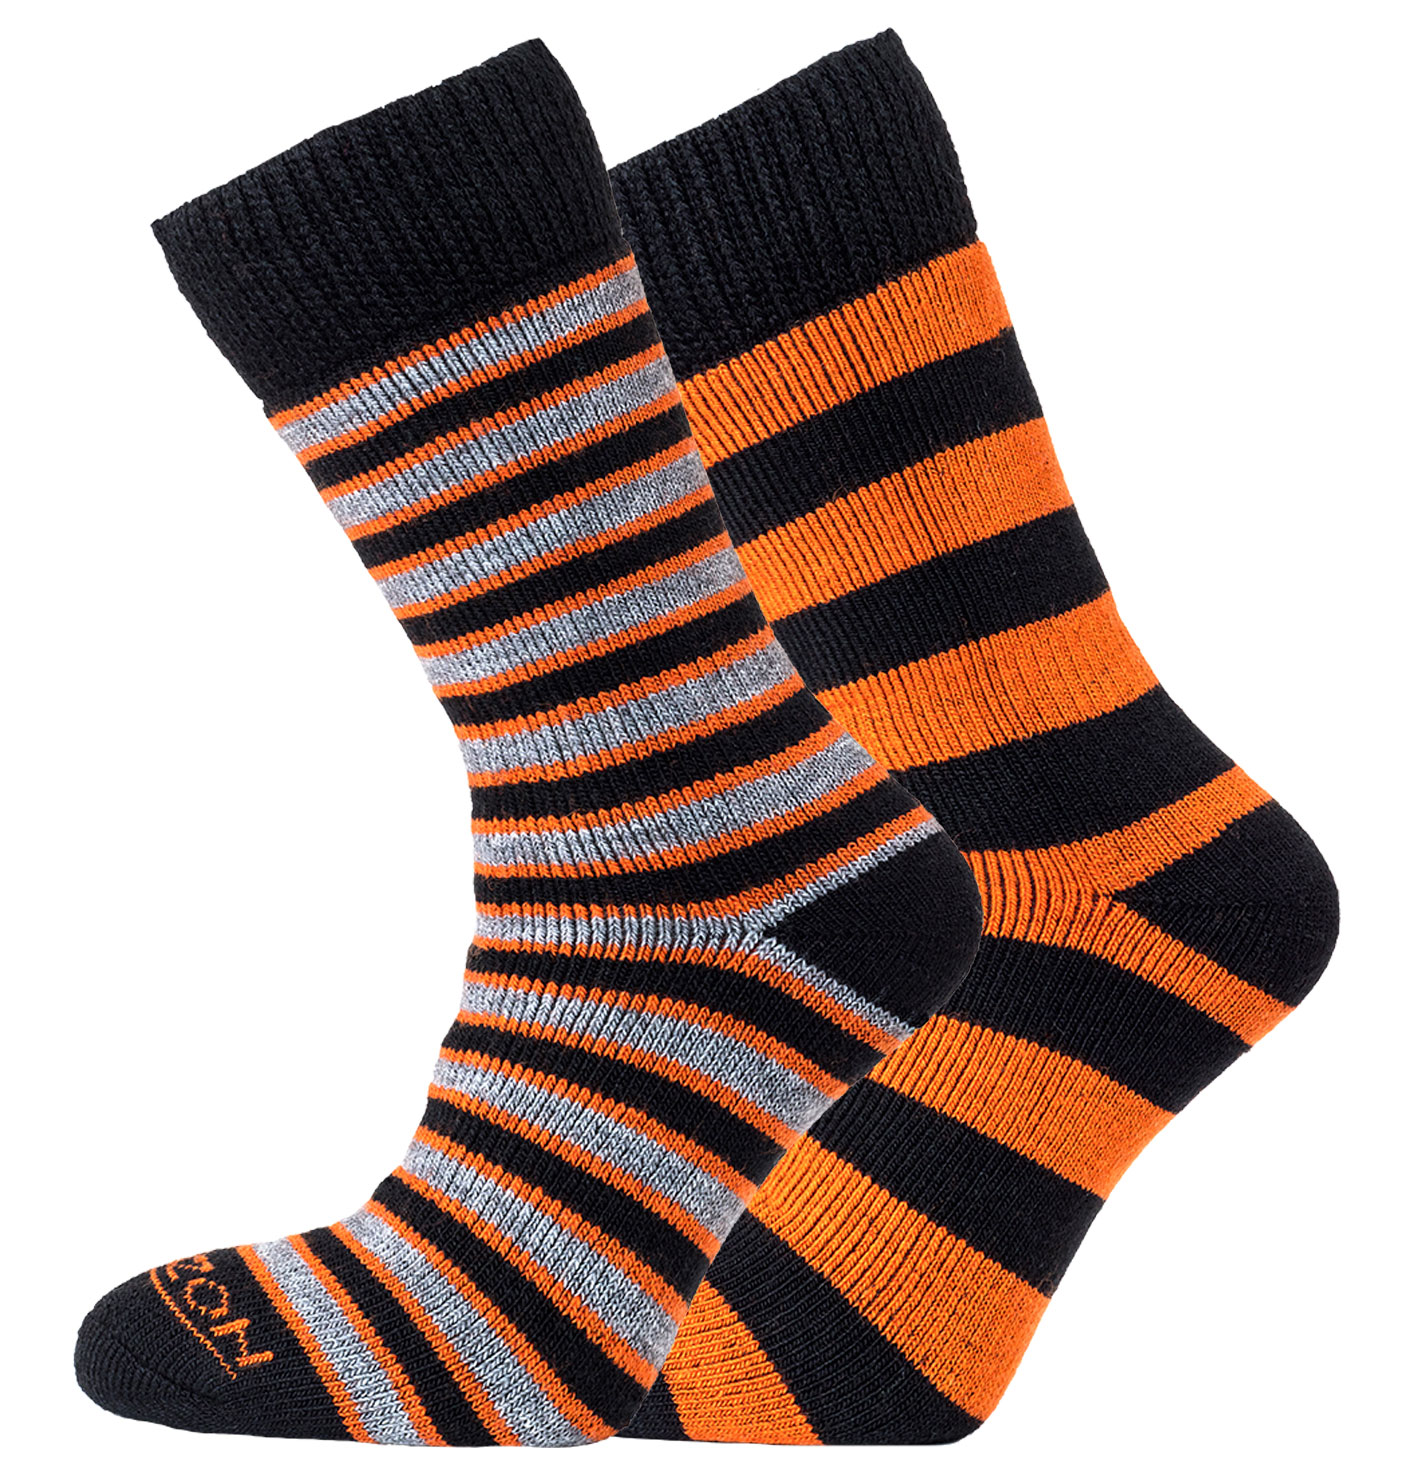 Merino Outdoor 2pk – Stripes & Hoops Orange/Black